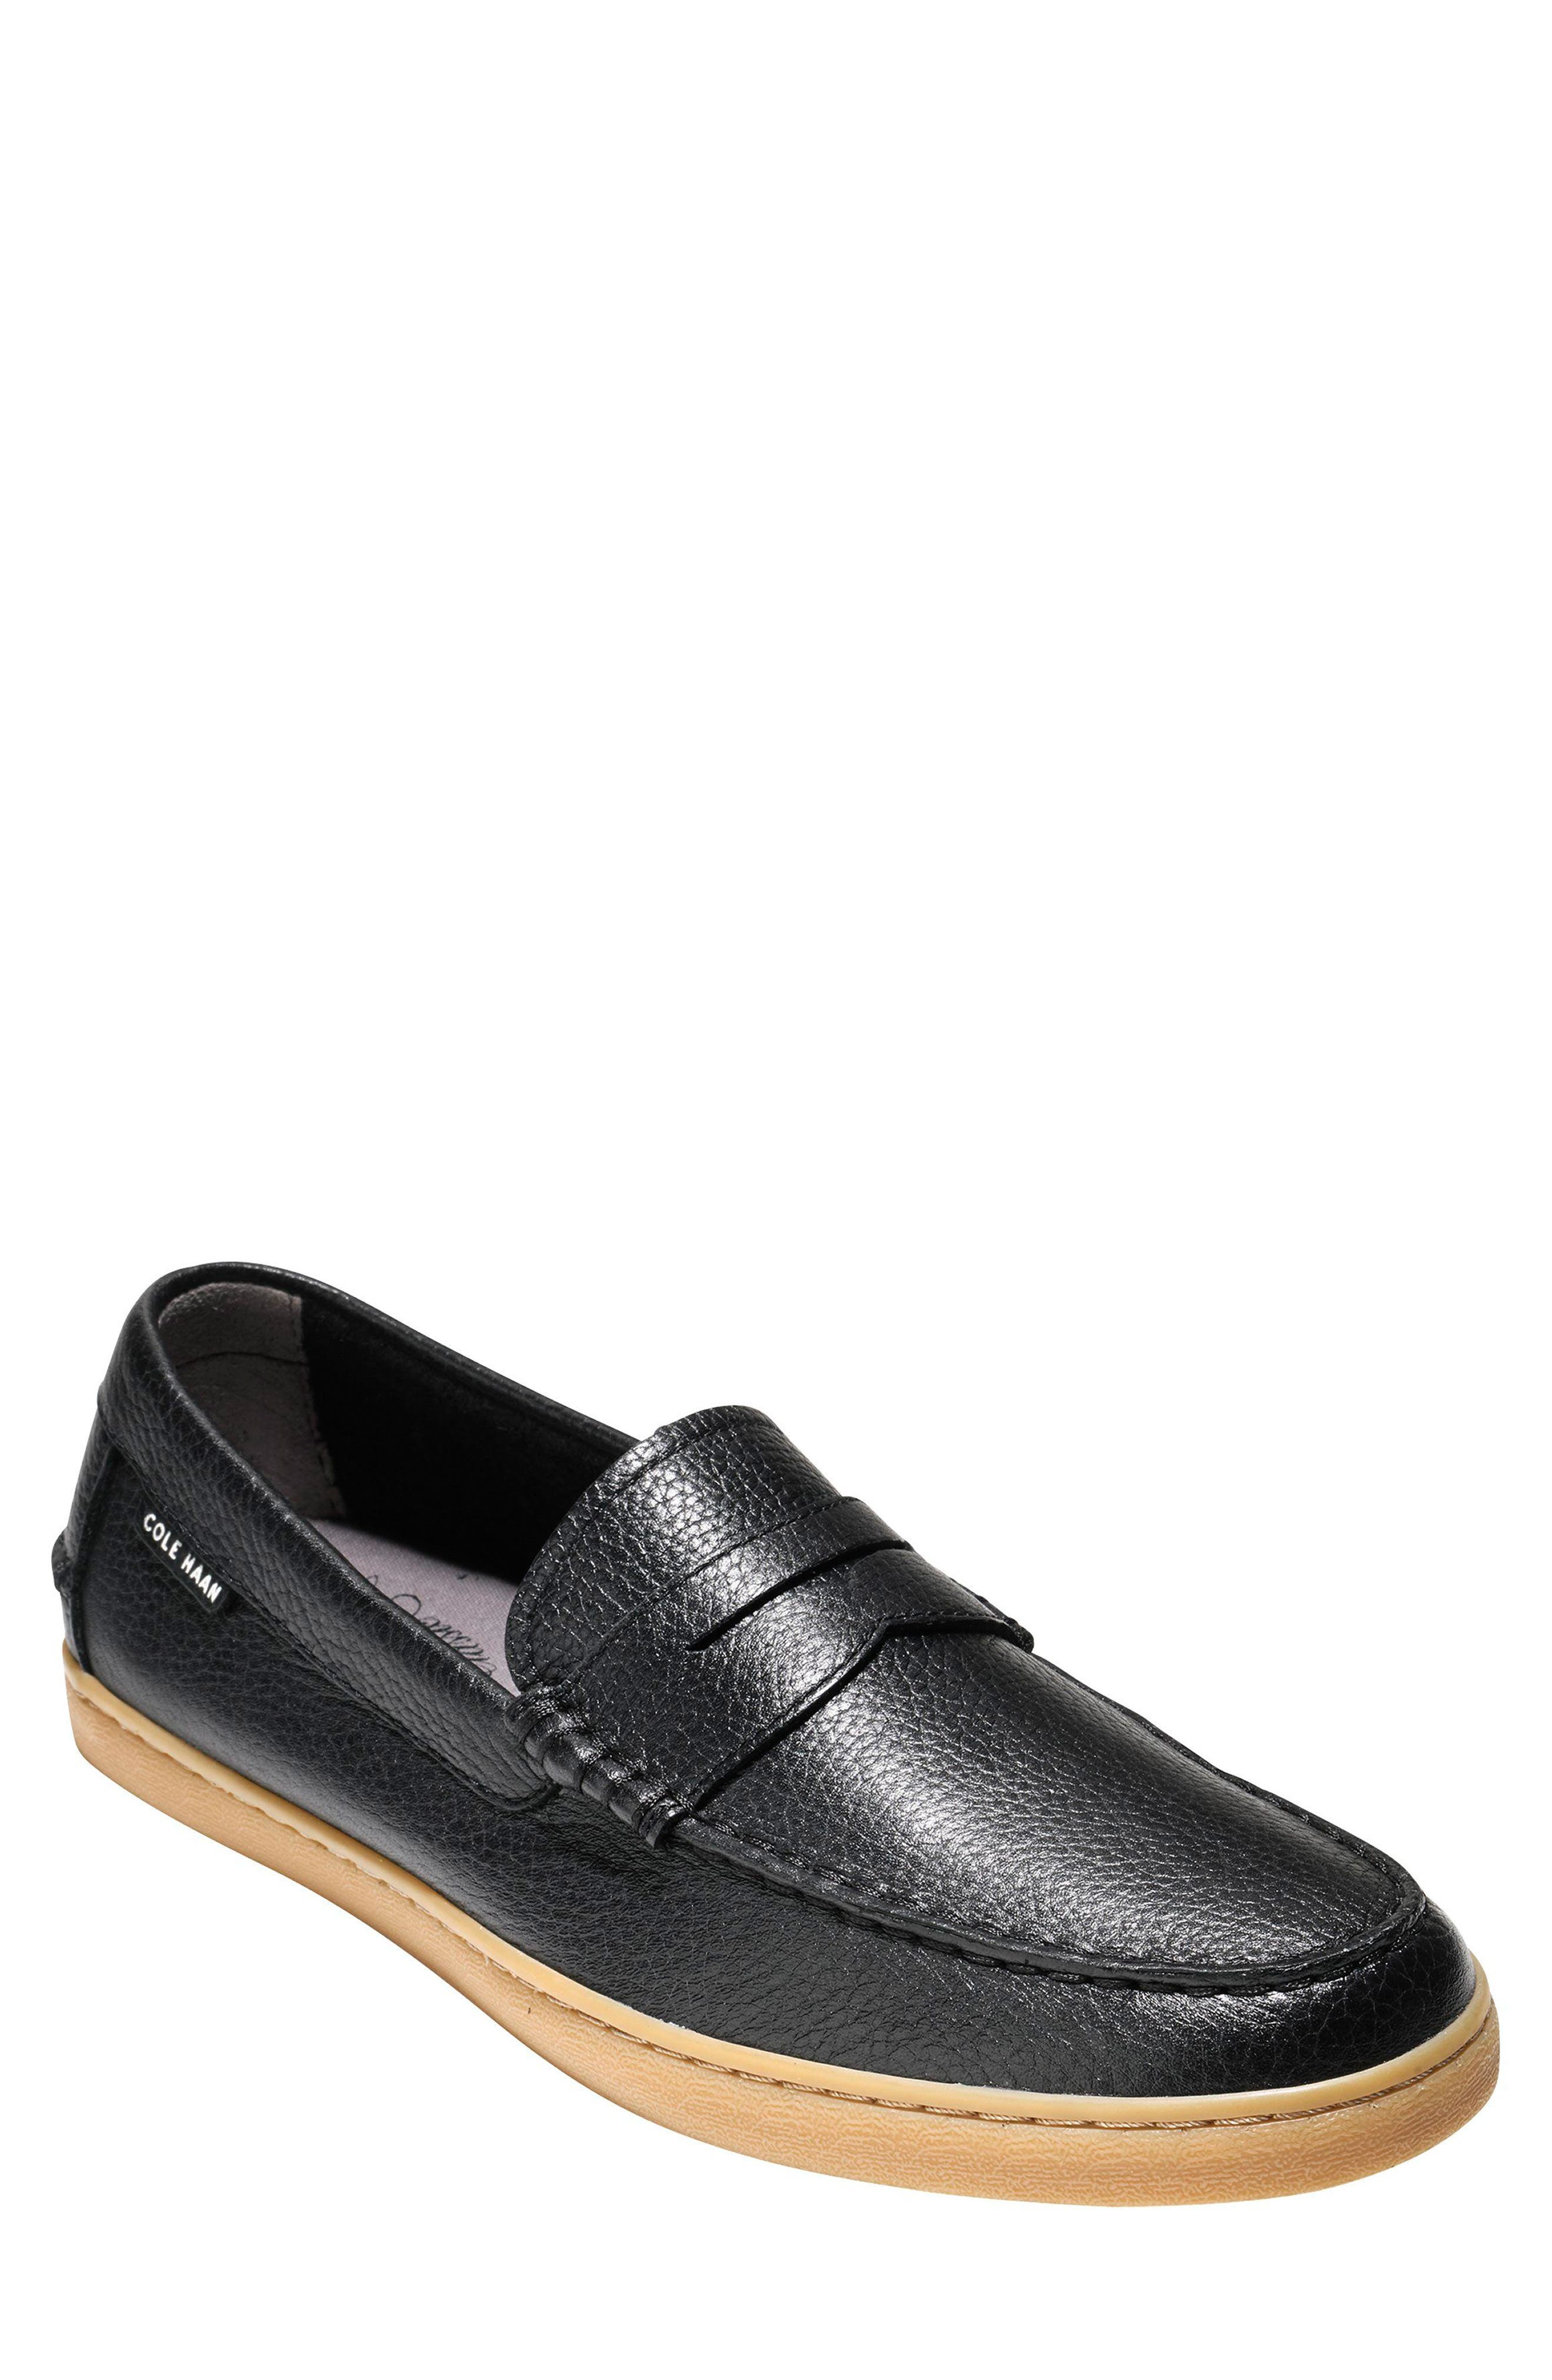 'Pinch Weekend' Penny Loafer,                         Main,                         color, Black Tumble Leather